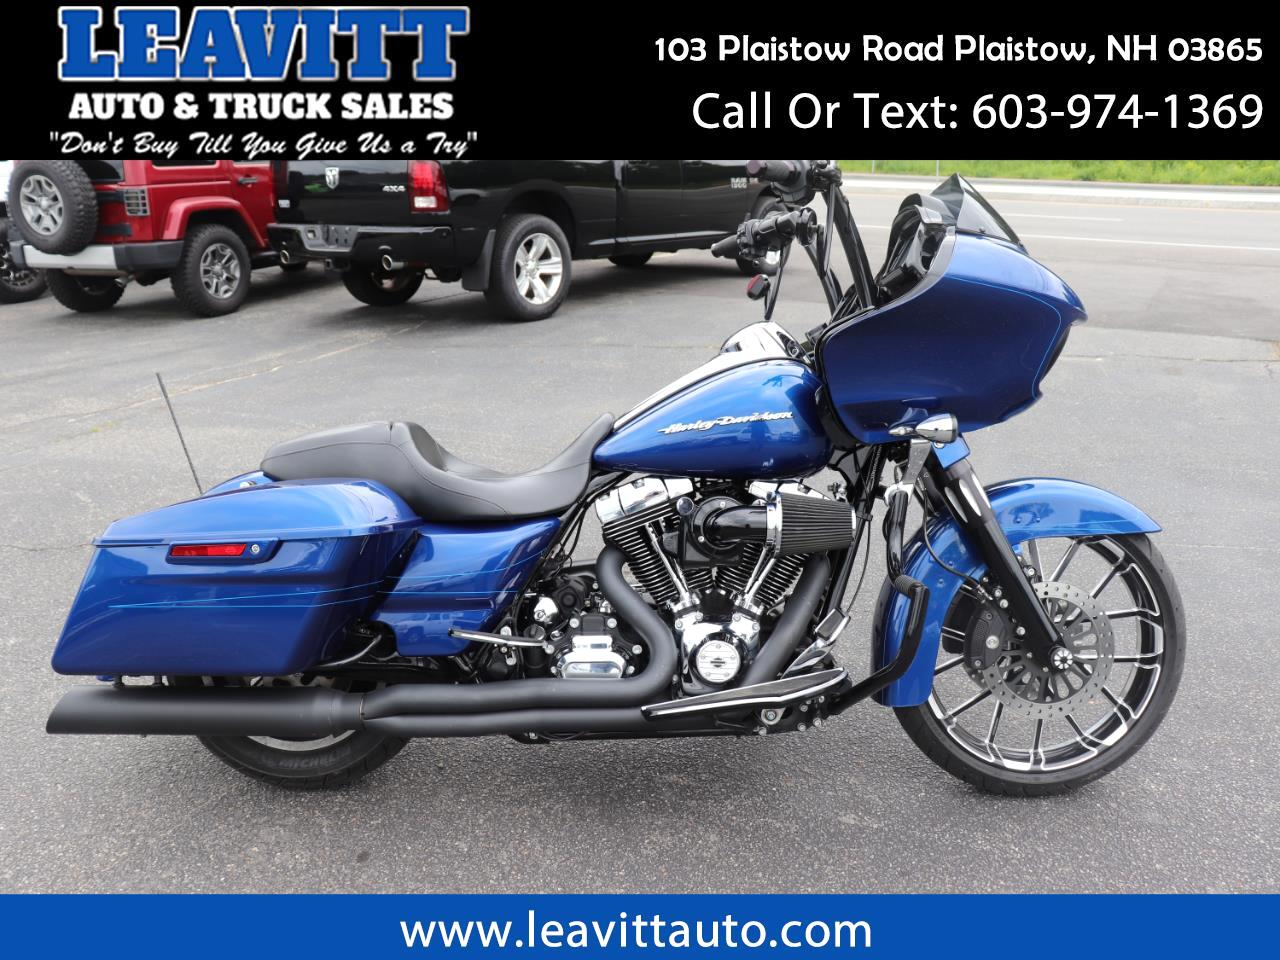 2016 Harley-Davidson FLTRXS ROAD GLIDE SPECIAL THOUSANDS IN EXTRAS!!!